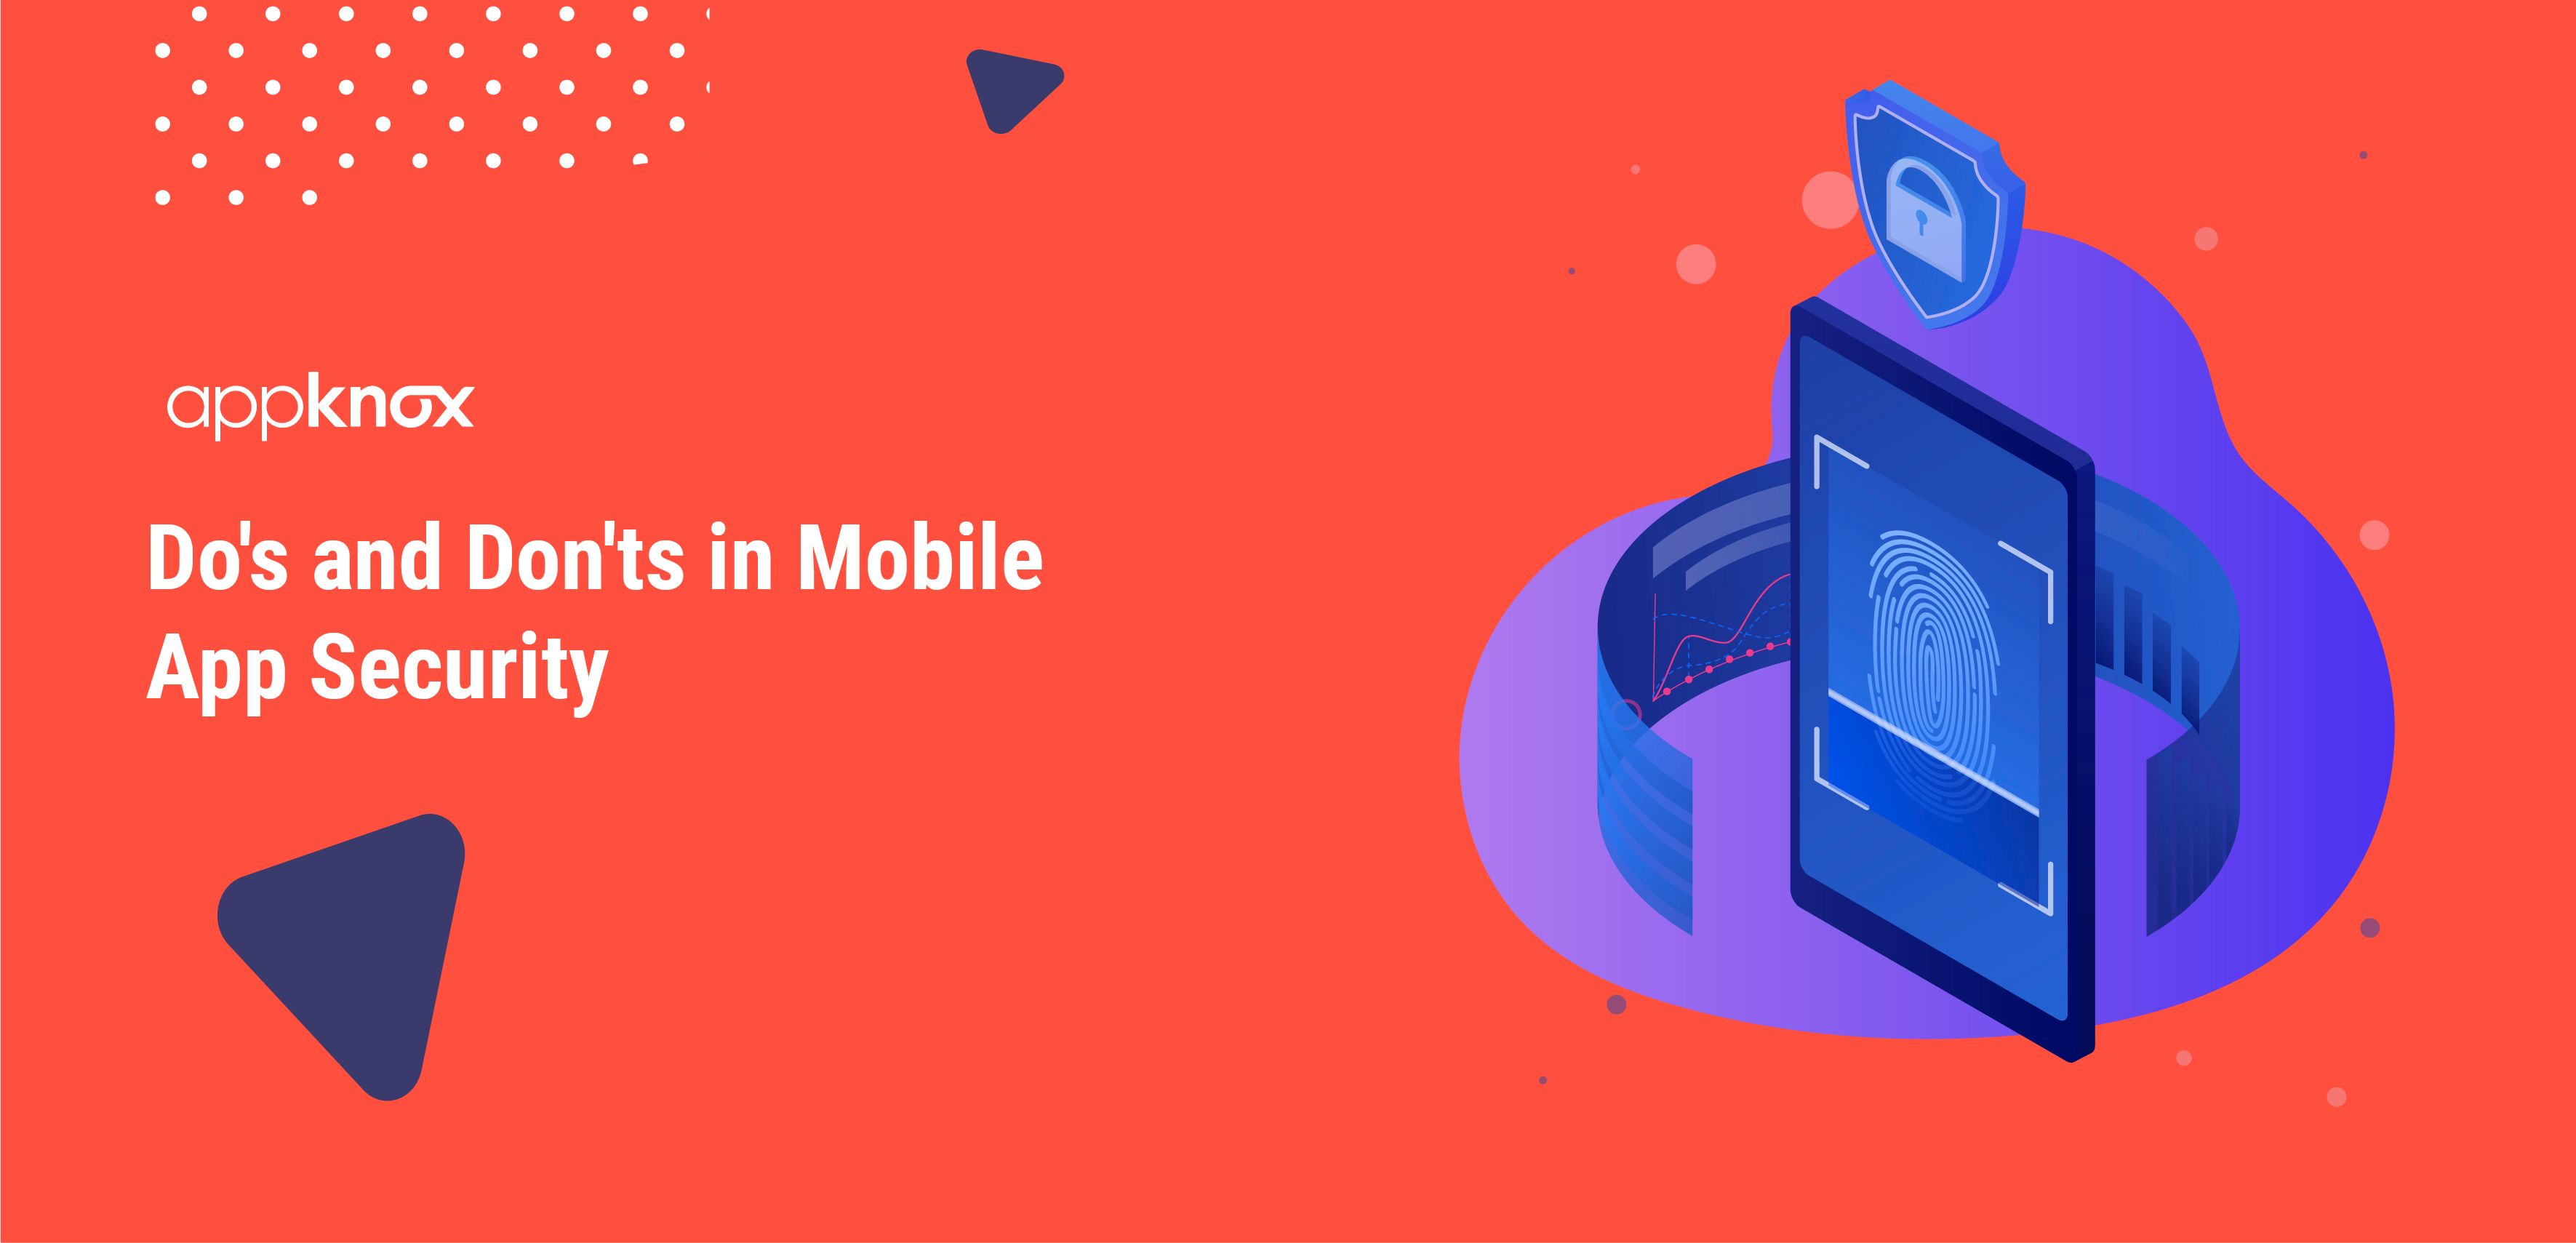 Do's and Don'ts in Mobile App Security